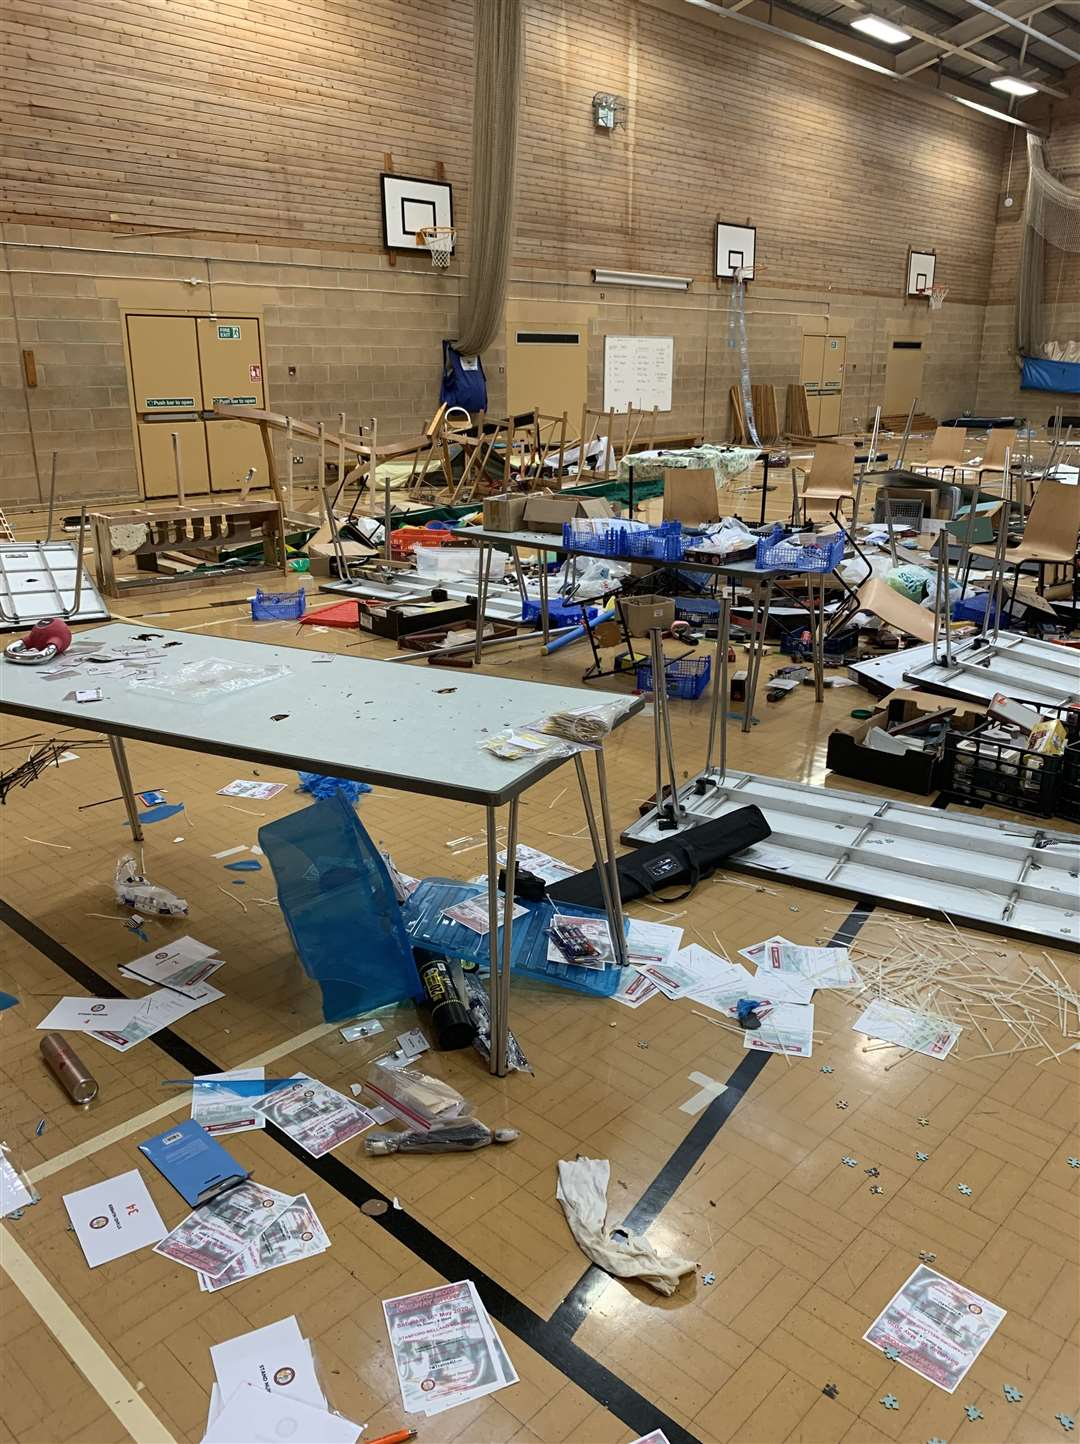 Destruction in the school hall (10581566)